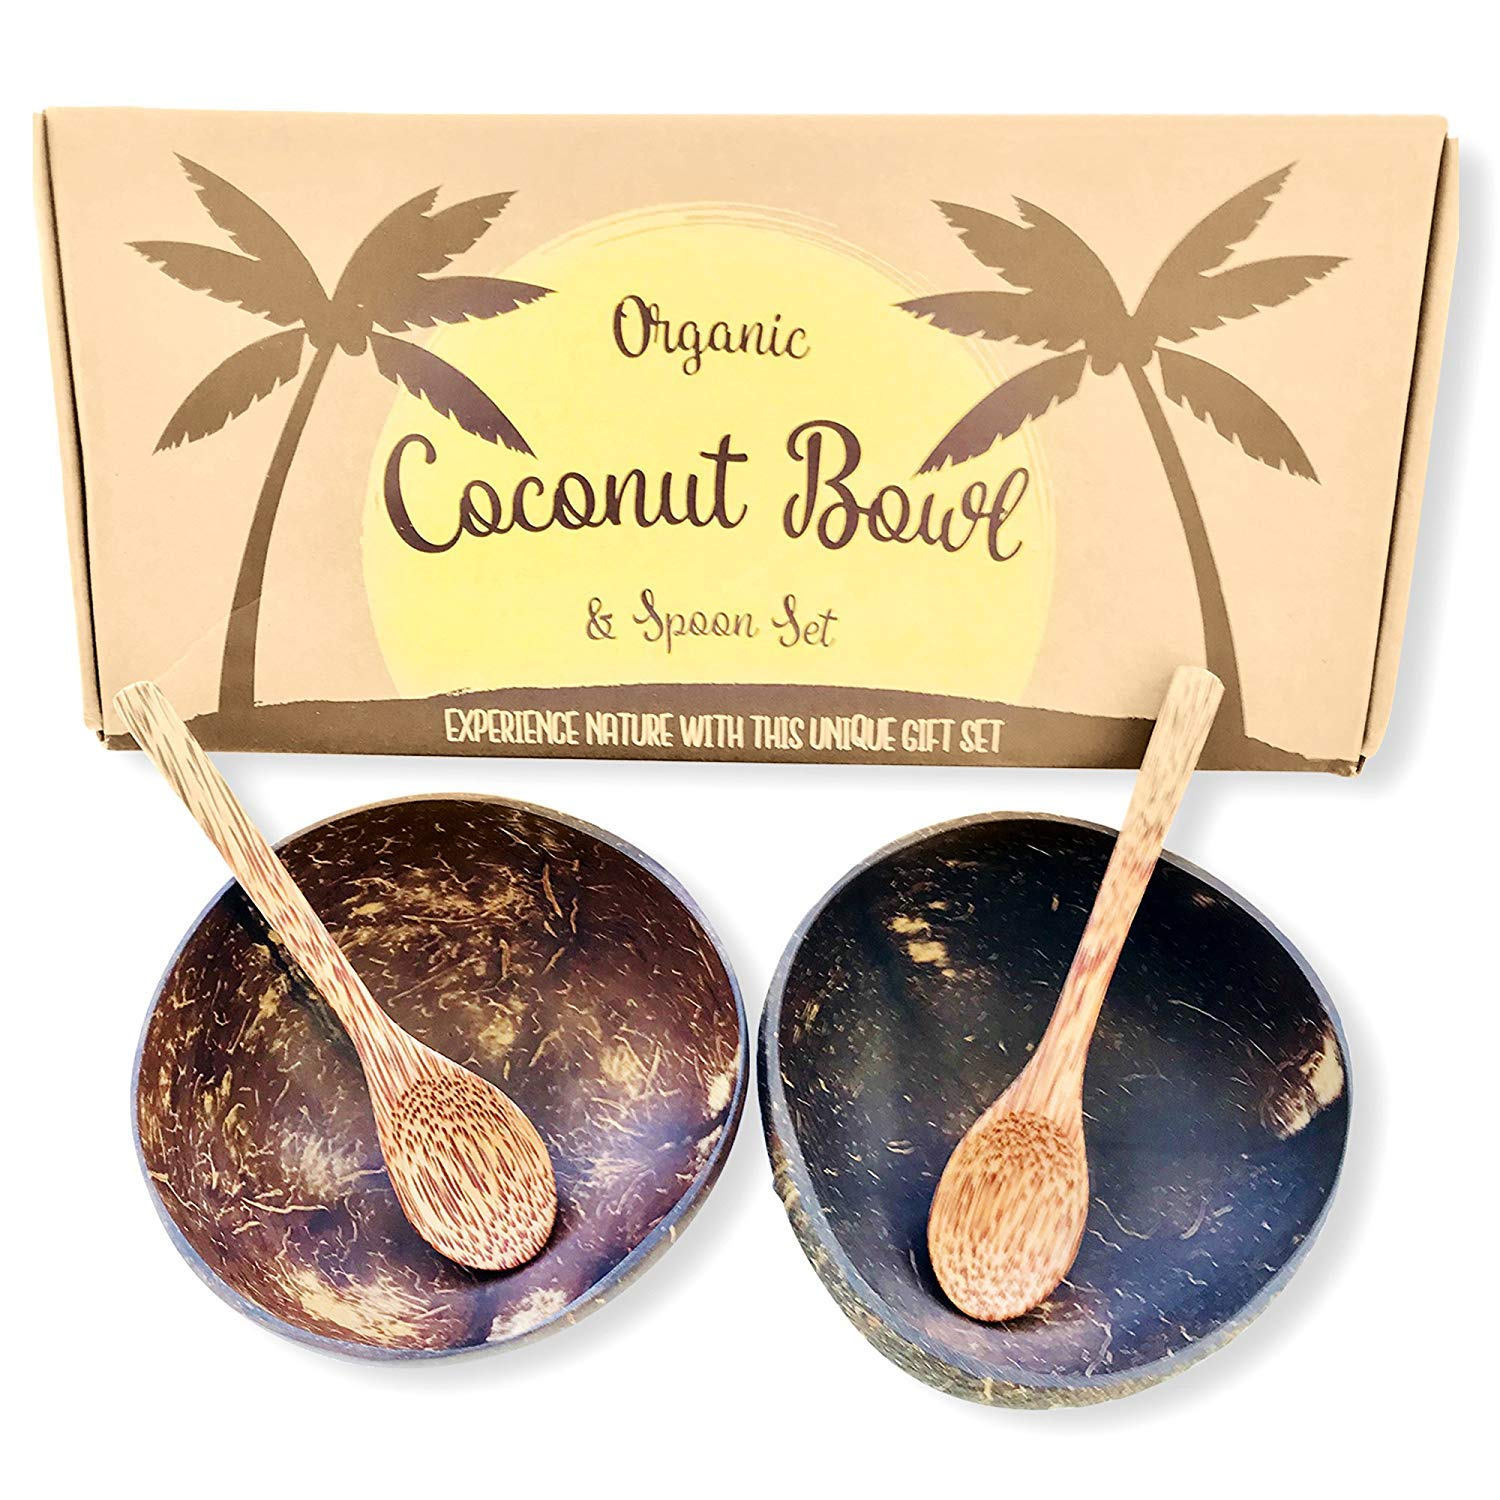 Coconut Bowls and Coconut Spoons Gift Set (Set of 2 Coco Bowls + 2 Coco Spoons) - 100% Natural - Vegan - Organic - Hand Made - Eco Friendly - Made from Reclaimed Coconut Shells - Artisan Craft Tradebizz